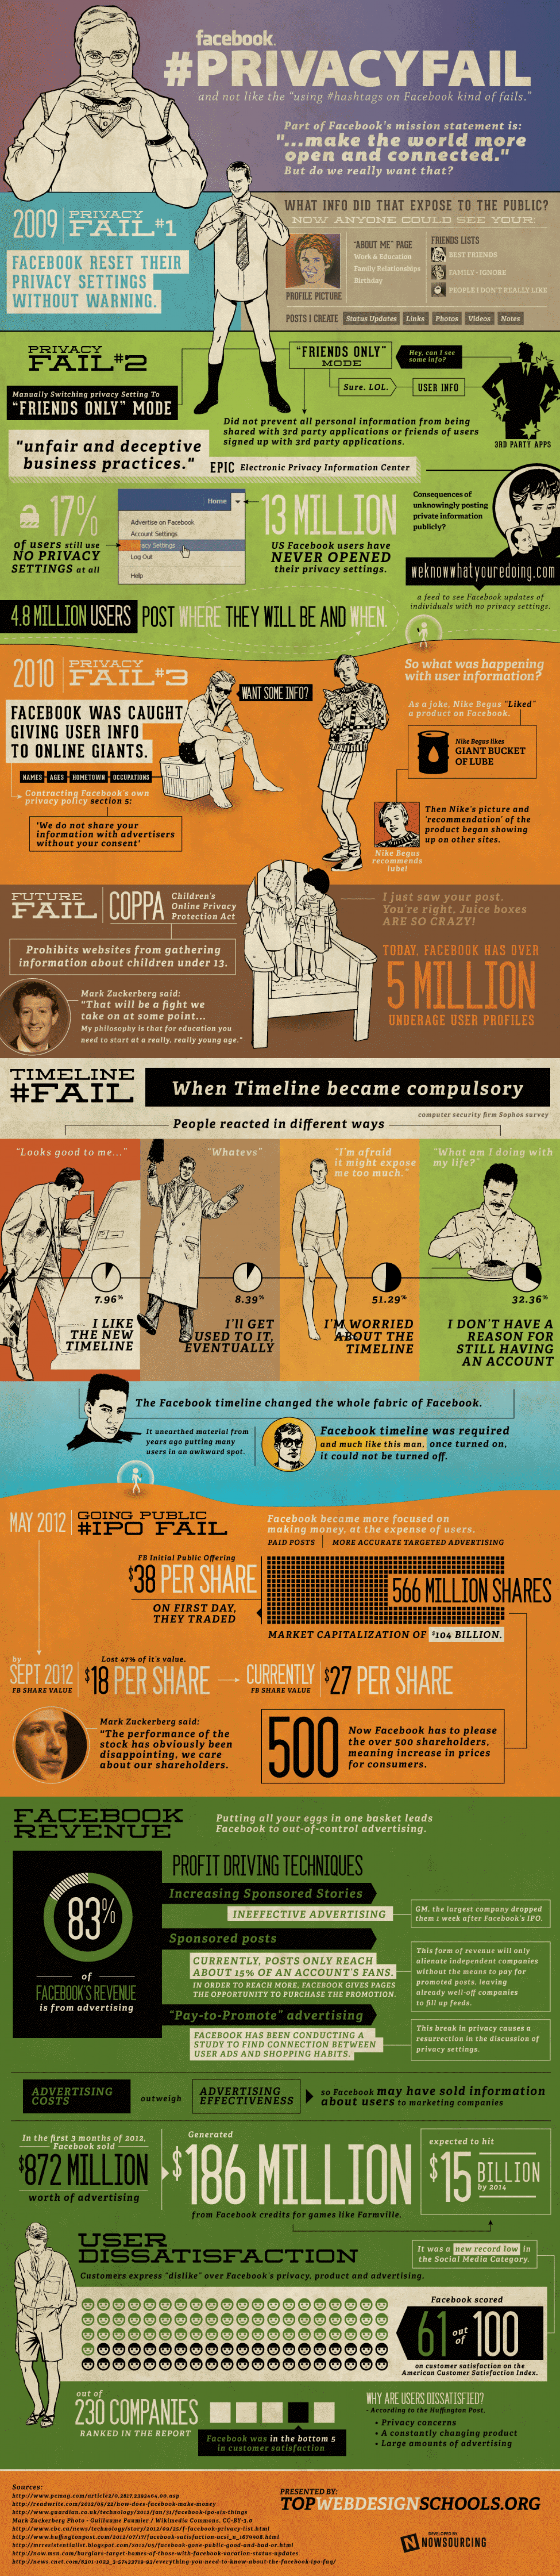 Facebook Privacy Fail Infographic